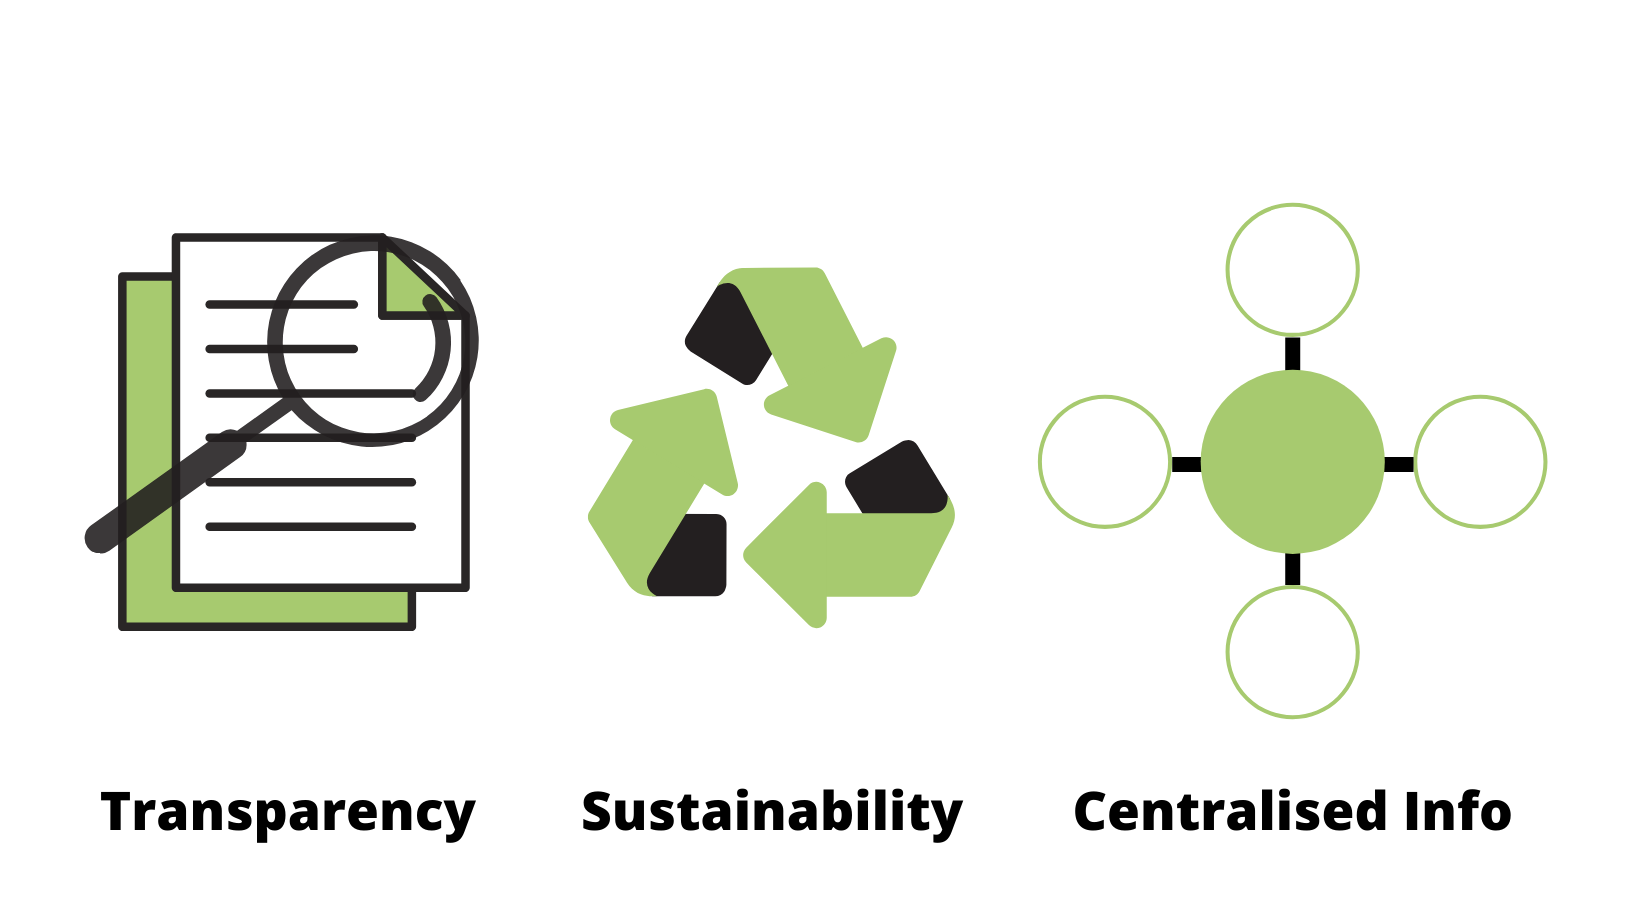 Three Factors - Transparency, Sustainability, and Centralised Information